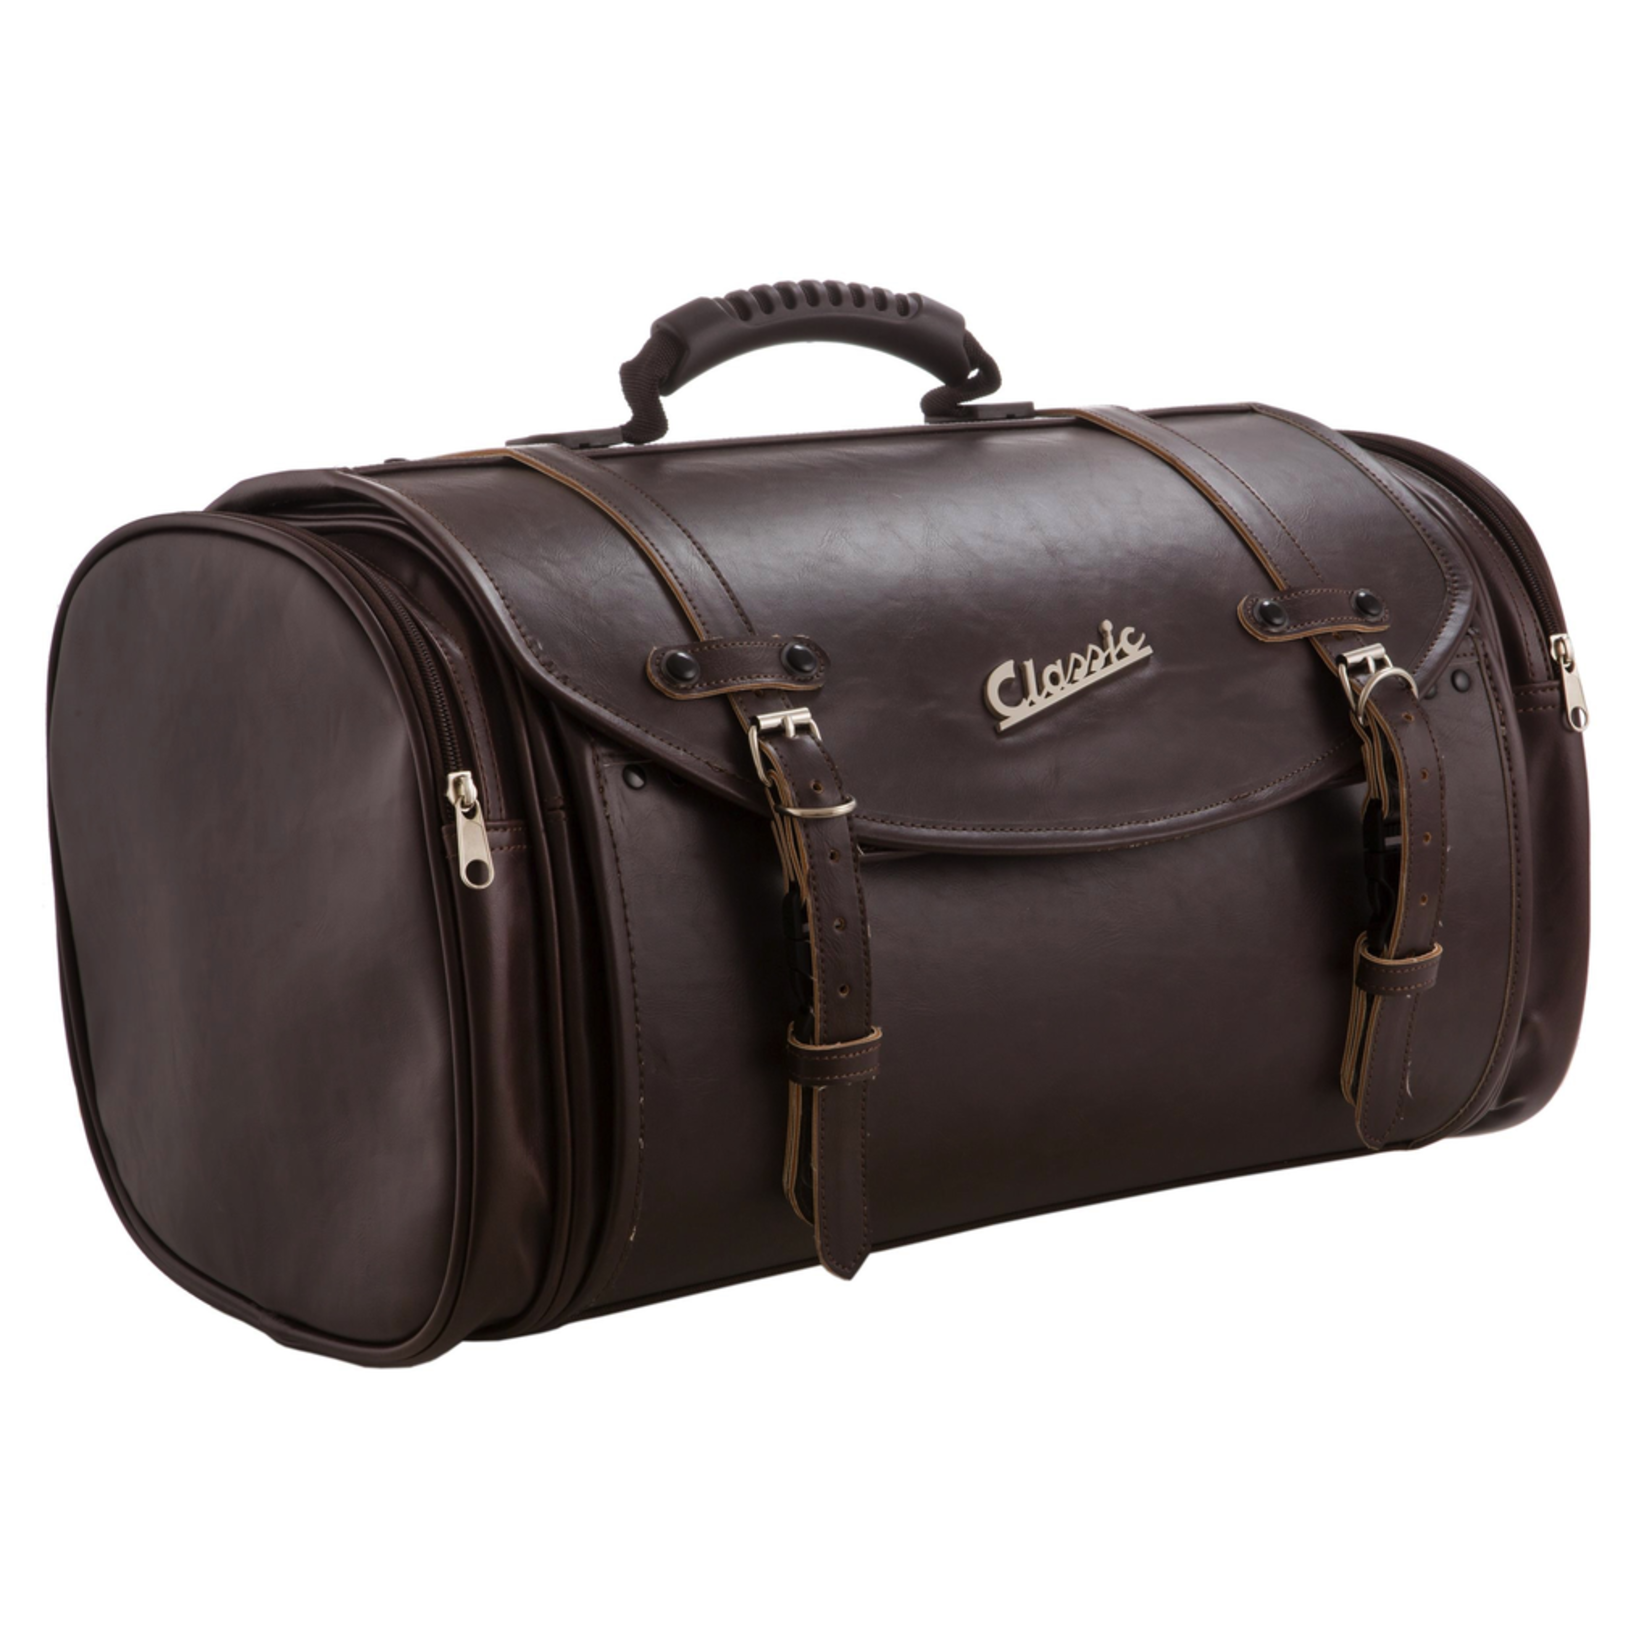 Accessories Top Case Bag, Brown Leather Look 35 ltr Bag